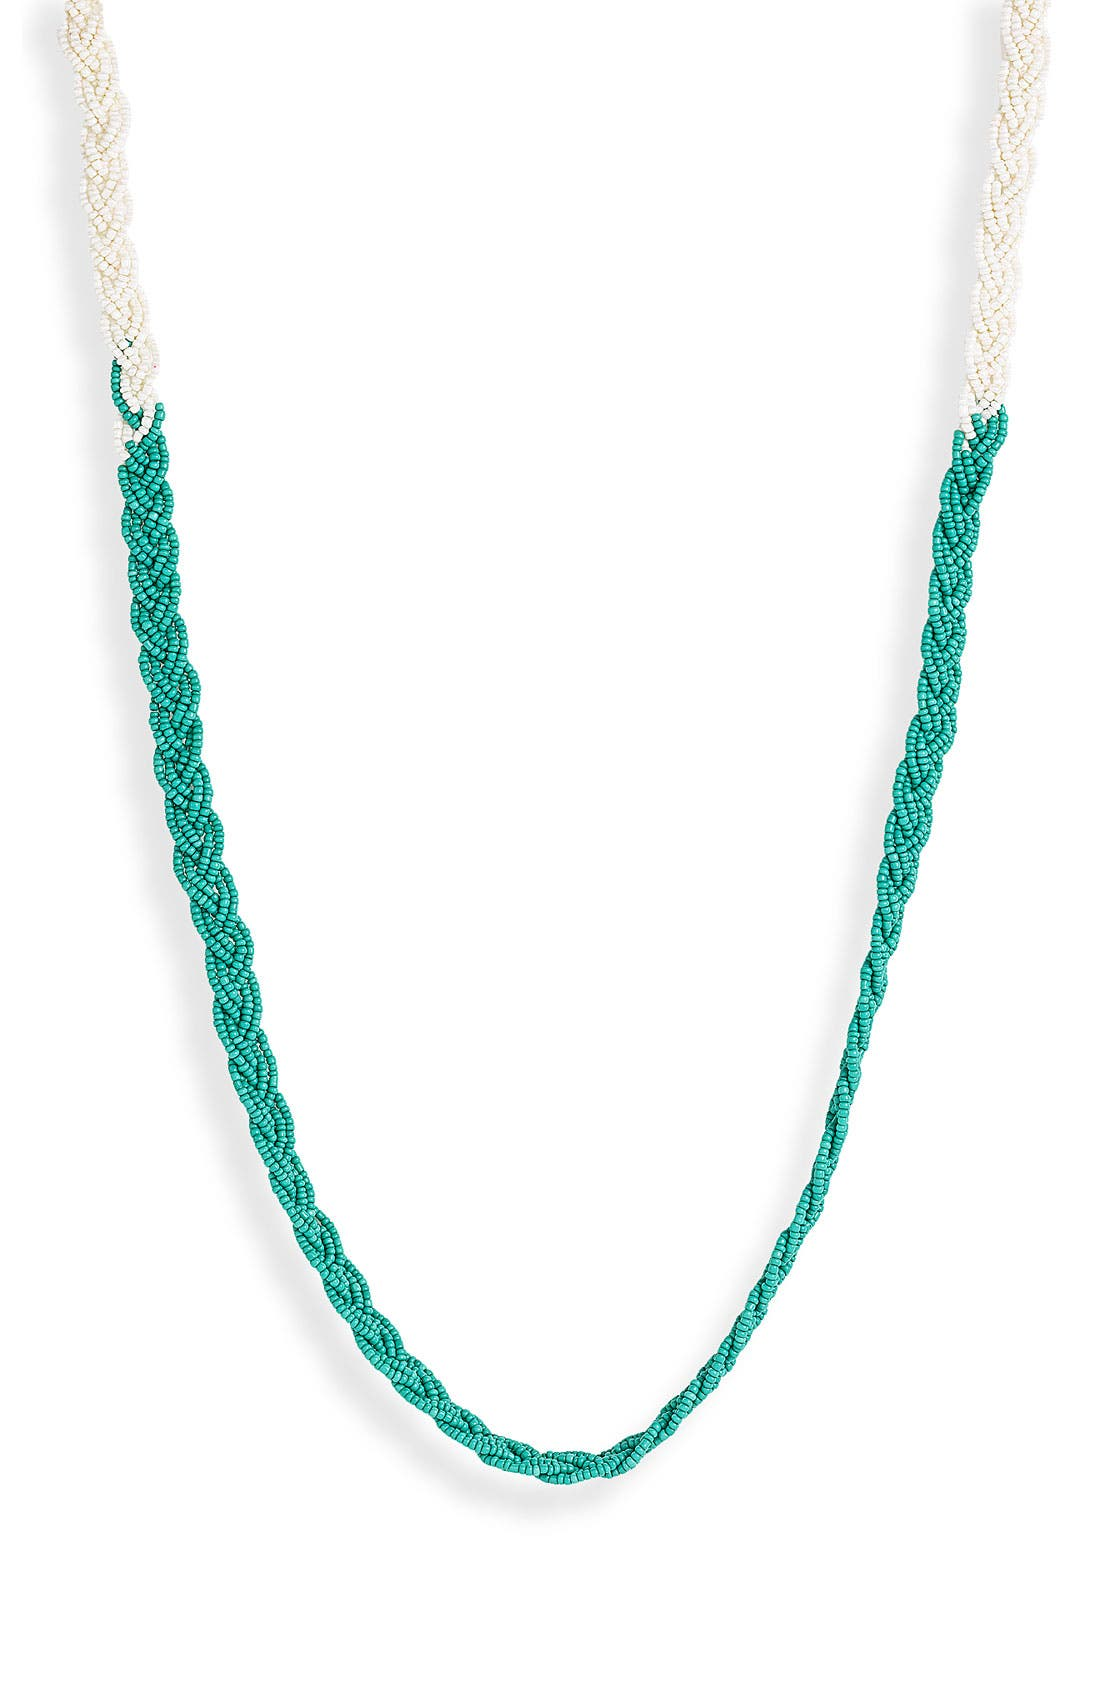 Main Image - Stephan & Co. Braided Seed Bead Necklace